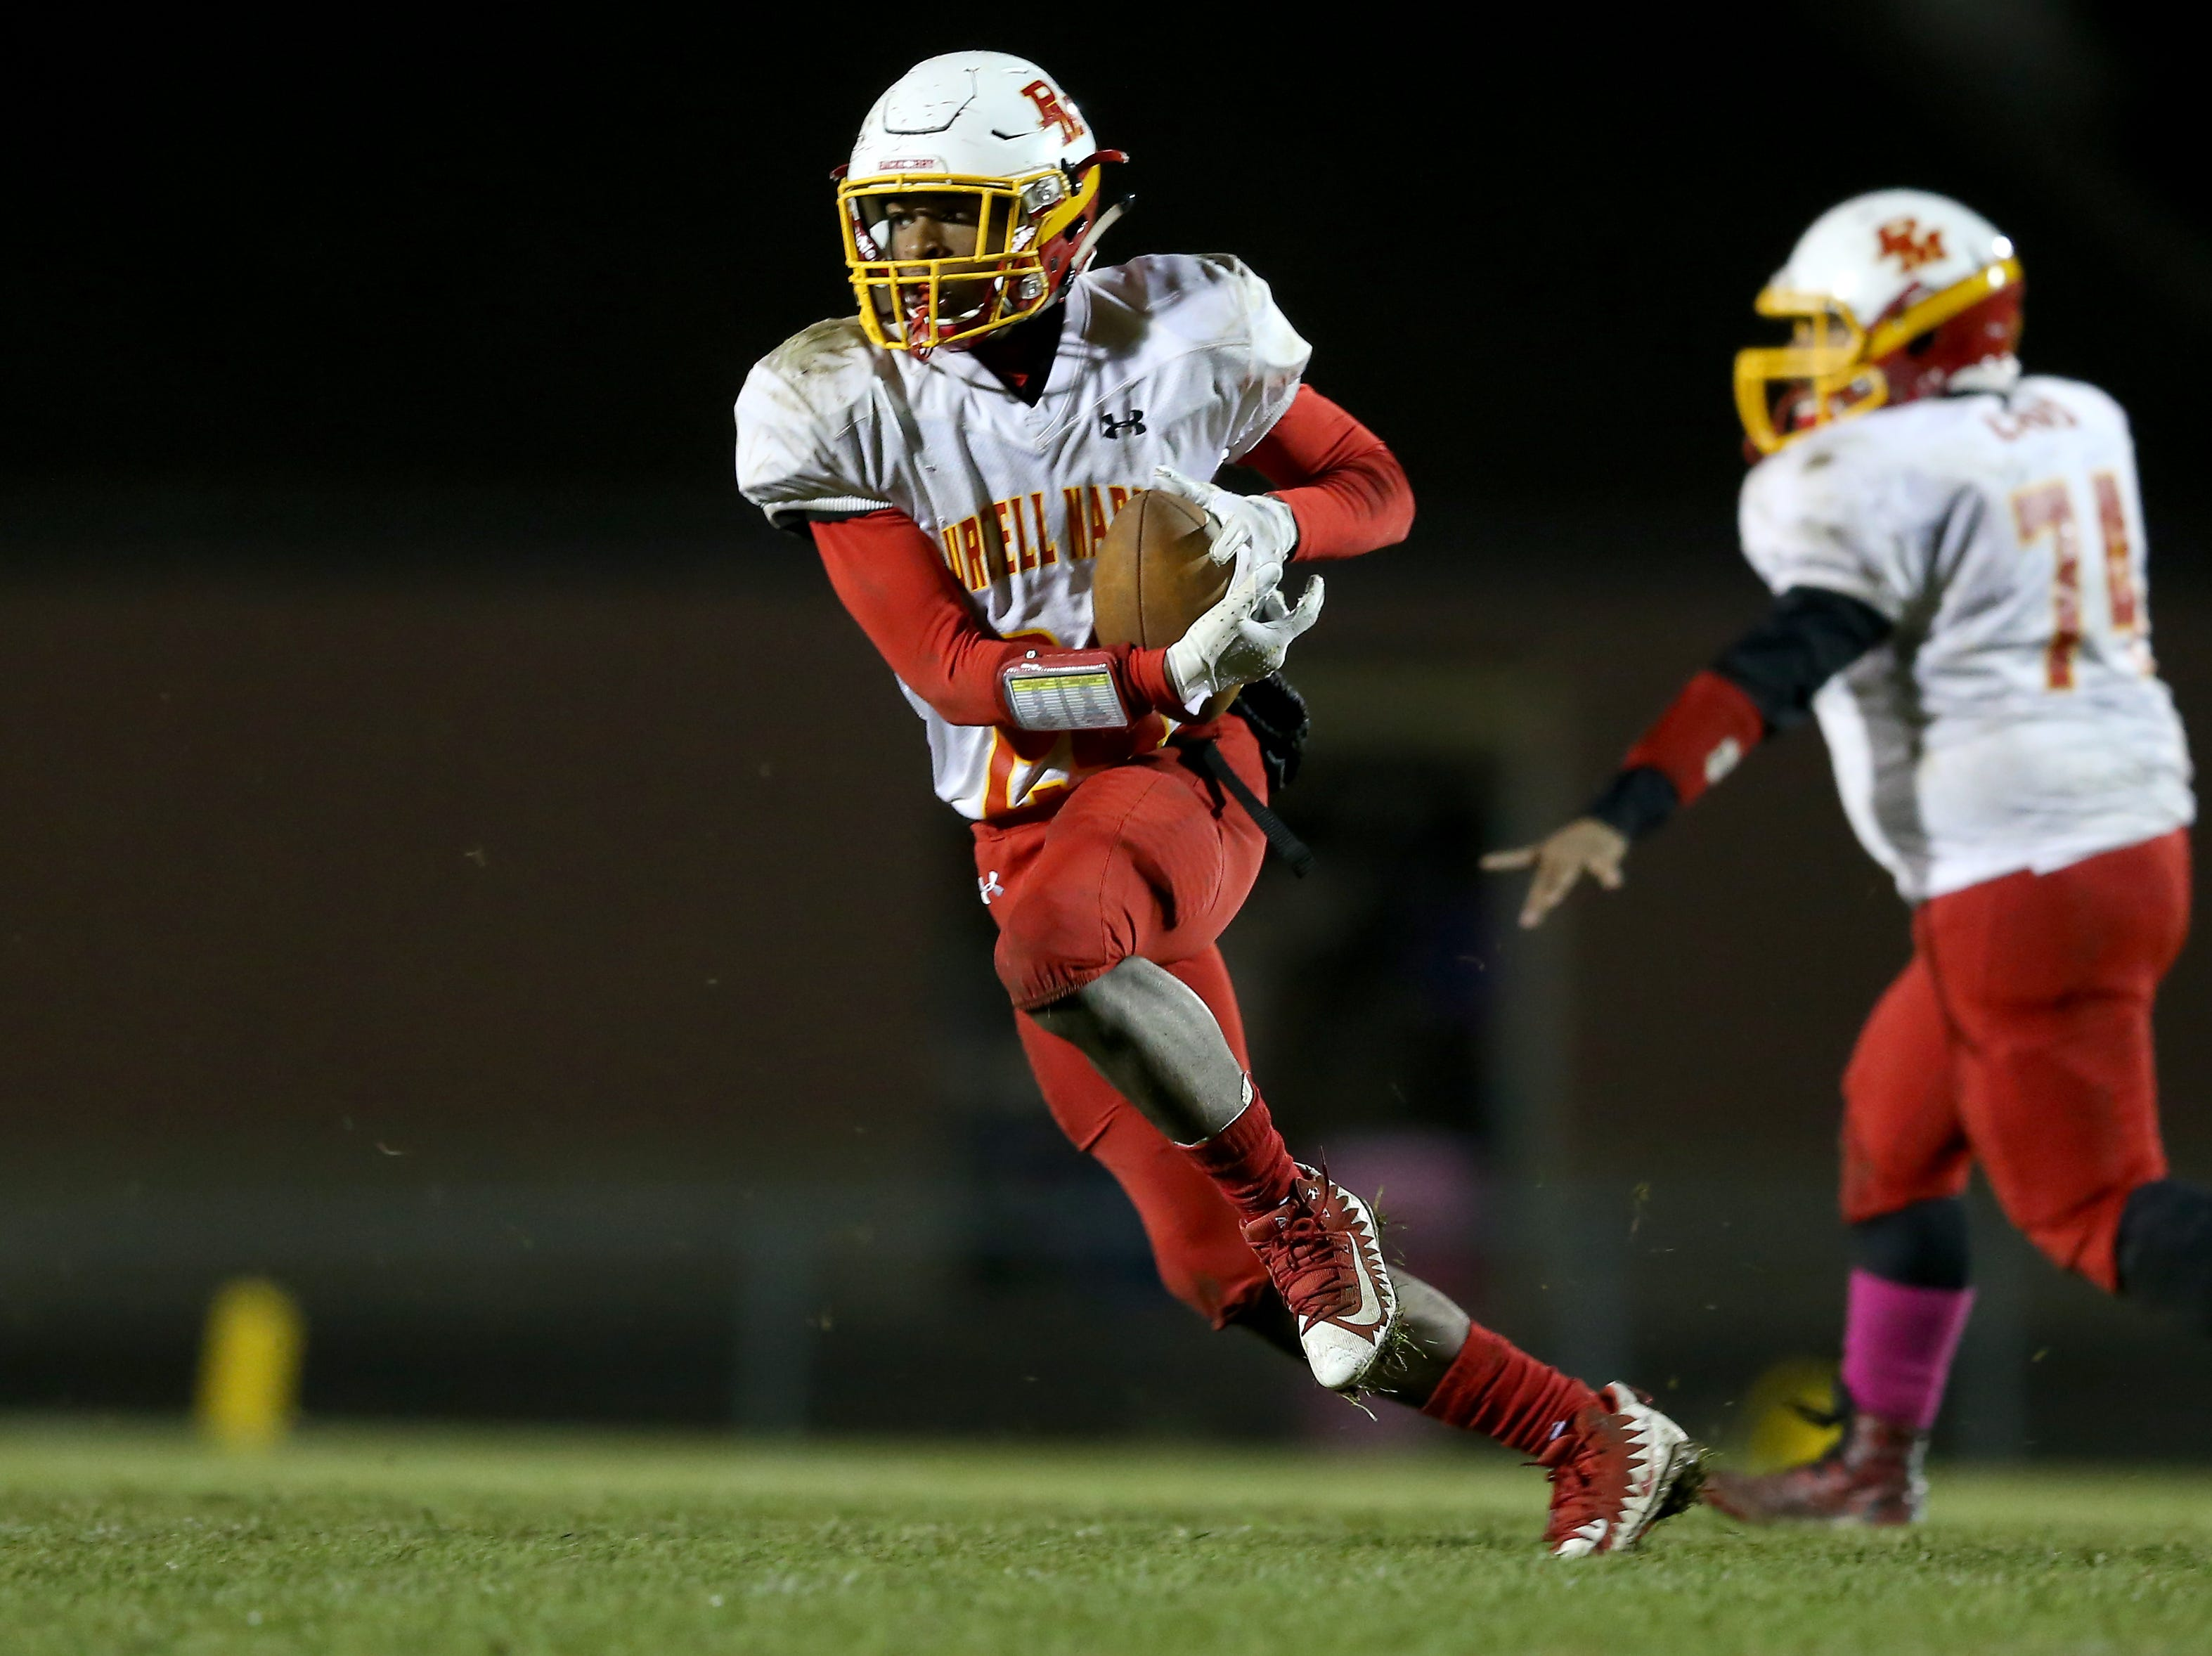 Purcell Marian wide receiver Artrimus Santor (25) catches a pass in the fourth quarter during a high school football game between Purcell Marian and Bishop Fenwick, Friday, Oct. 12, 2018, at Bishop Fenwick High School in Middletown, Ohio.